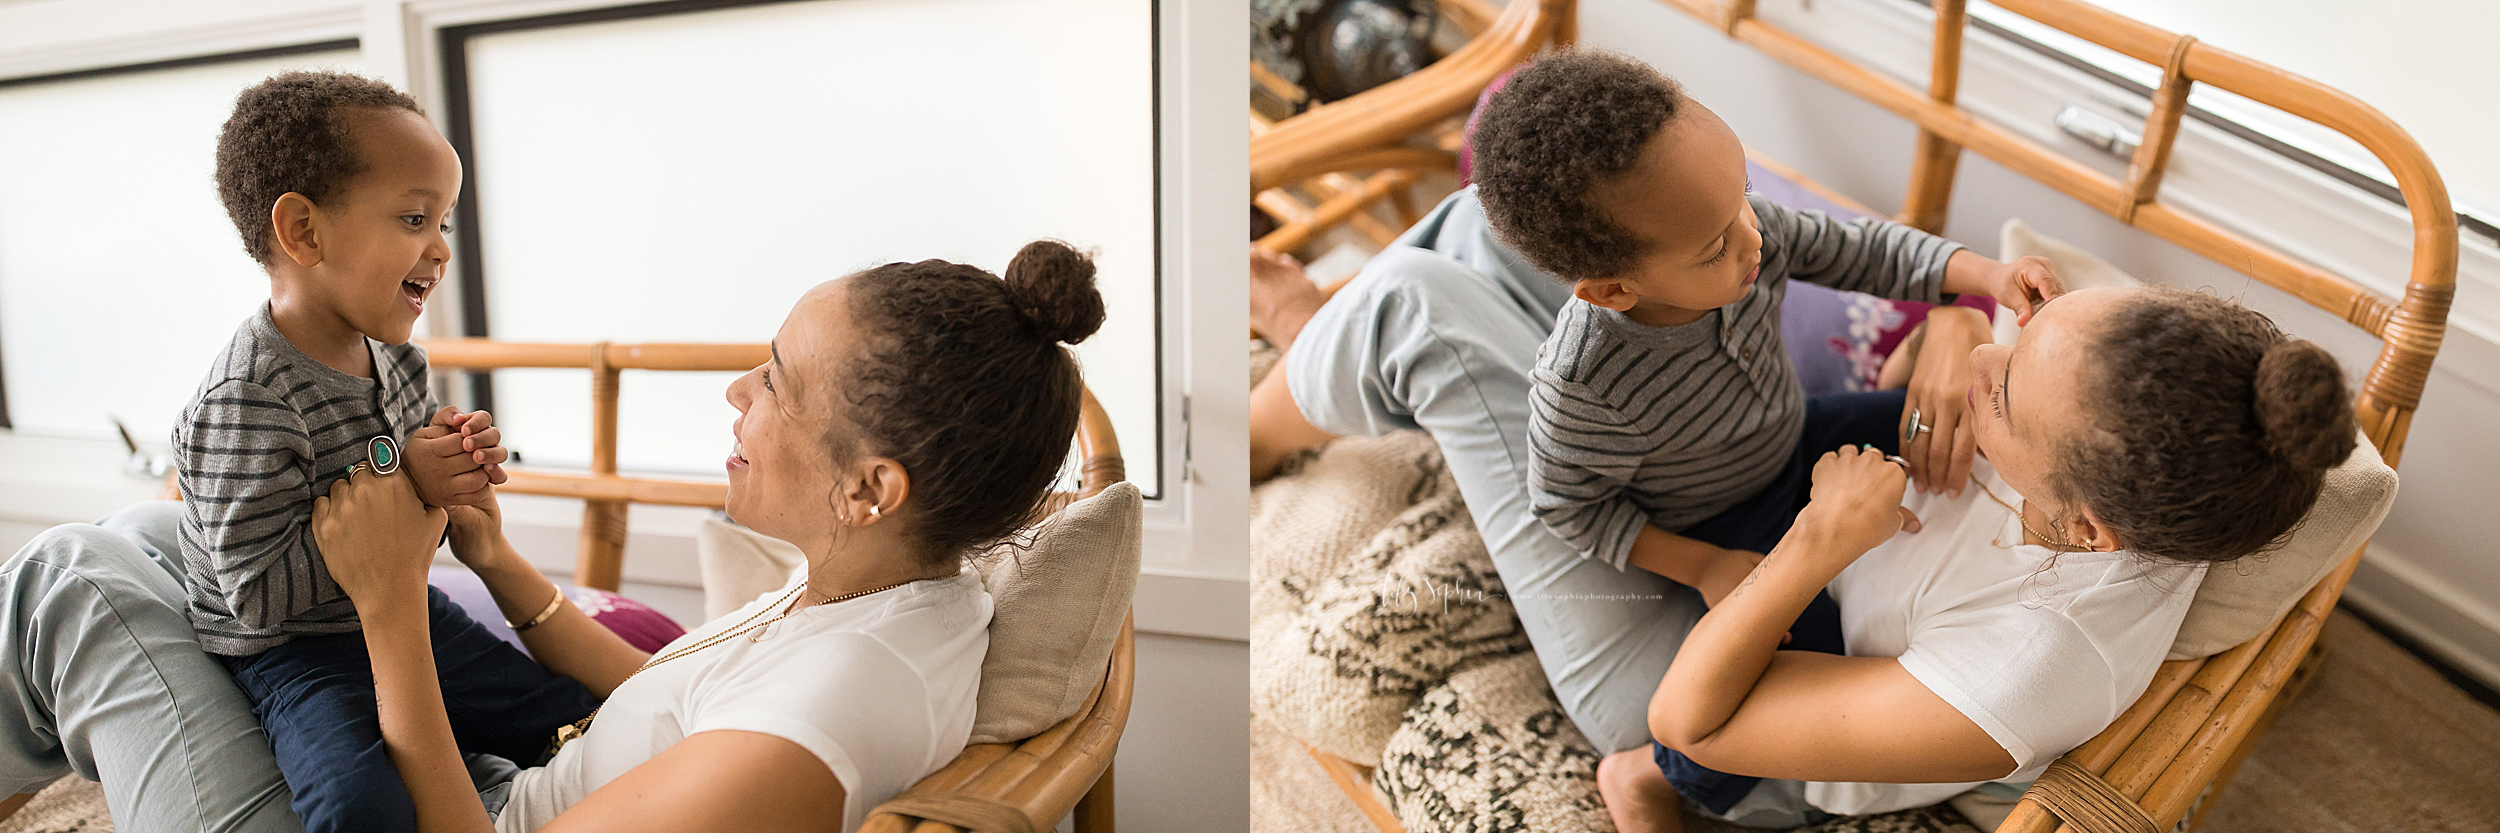 atlanta-midtown-inman-grant-park-beltline-old-fourth-ward-lily-sophia-photography-in-home-lifestyle-mommy-and-me-session-family-photographer-toddler-boy_0421.jpg